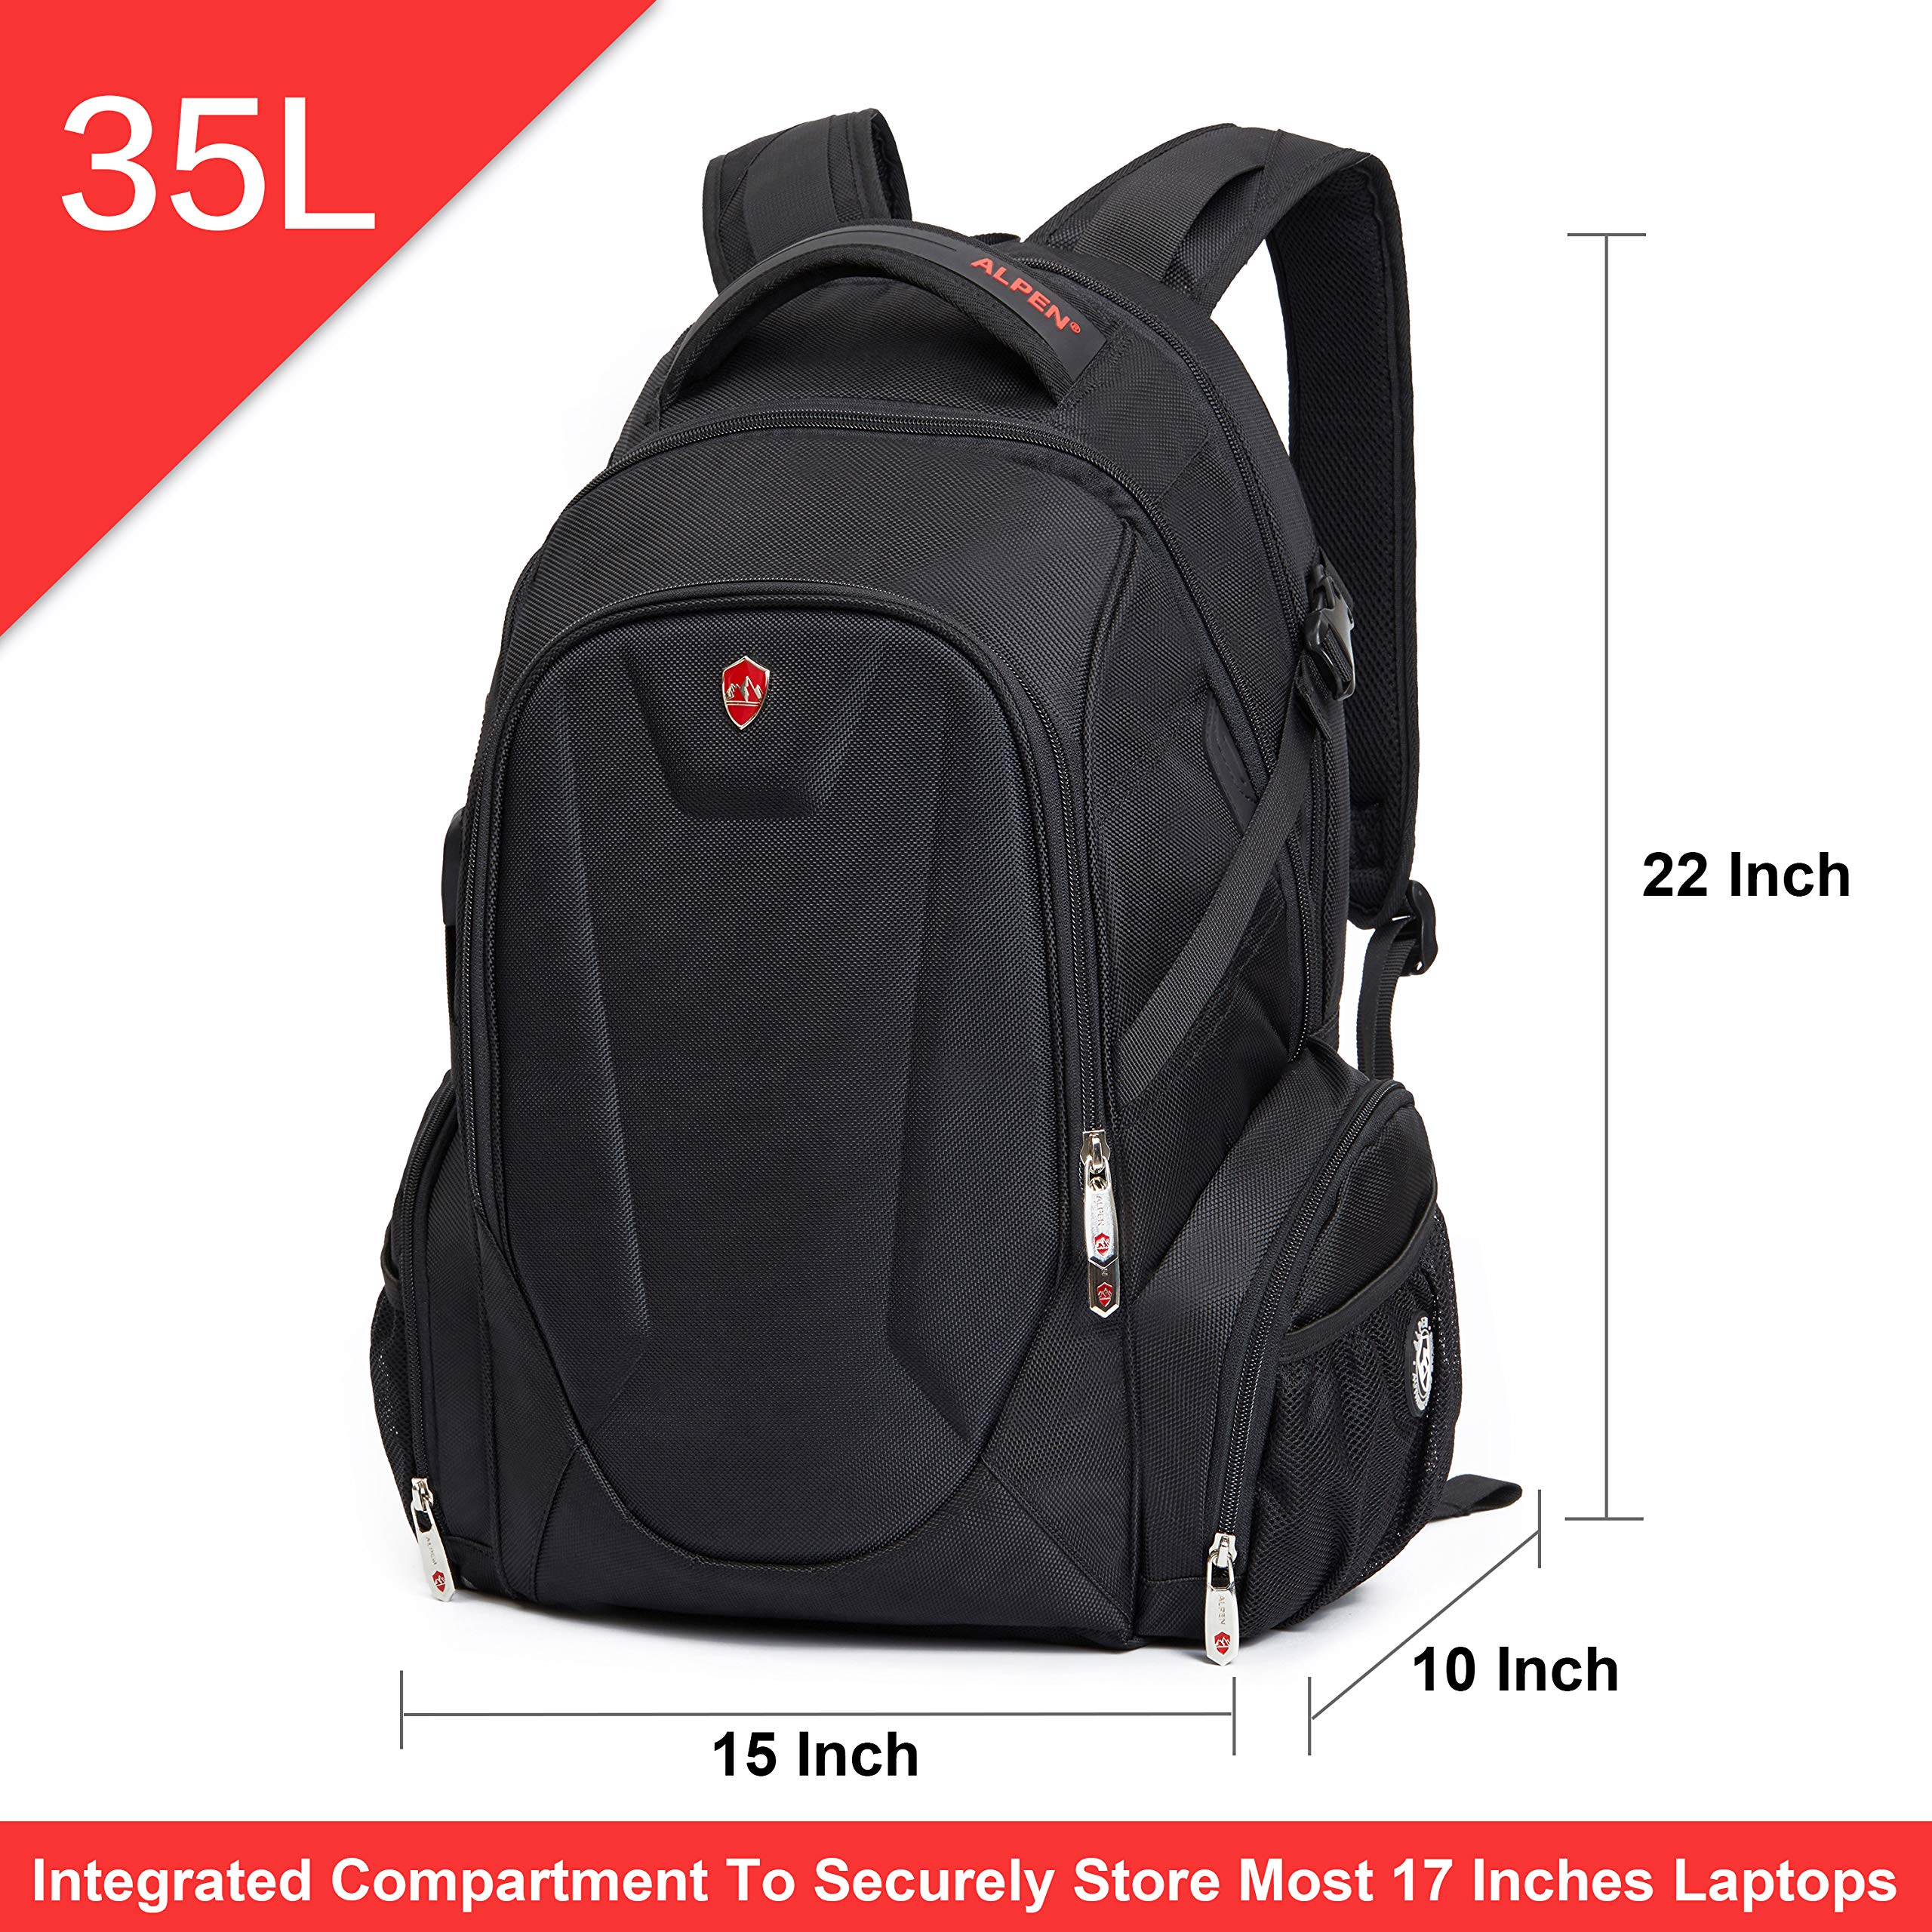 Swiss Alpen - Blanc Backpack - Water Resistant Durable 1680D Large Laptop Backpack for Travel, School & Business - Fits 15.6'' Laptop with USB Charging Port - Black Exclusive by Swiss Alpen (Image #2)